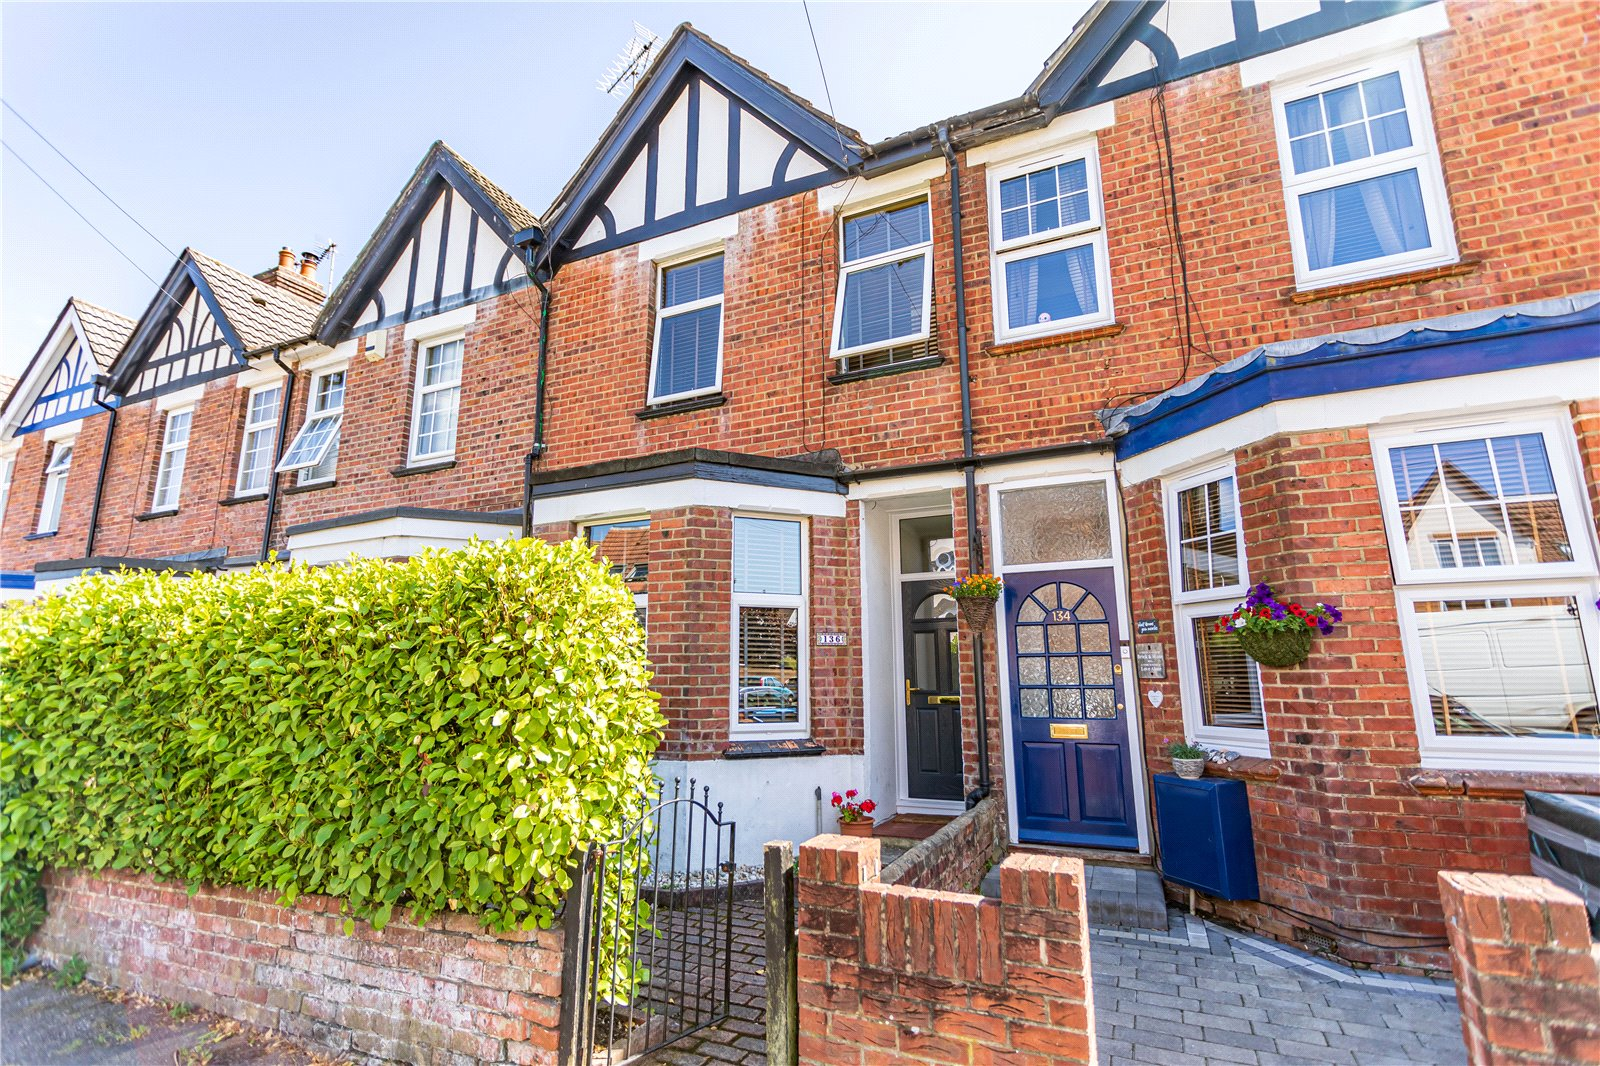 3 bed house for sale in Florence Road, Lower Parkstone, BH14